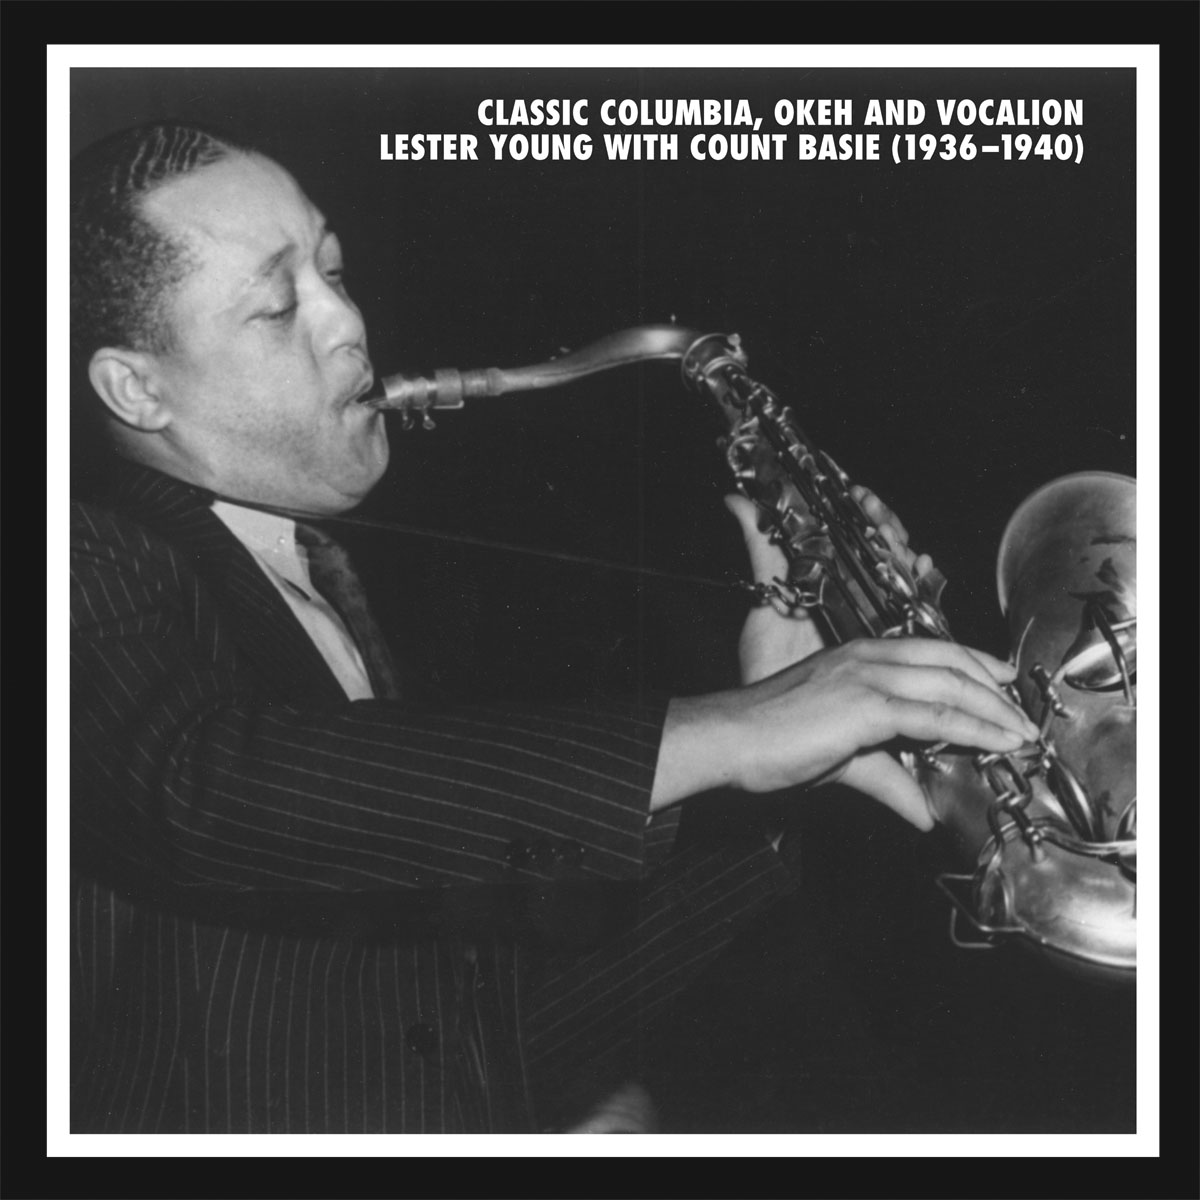 Classic Columbia, OKeh and Vocalian Lester Young with Count Basie 1936-1940